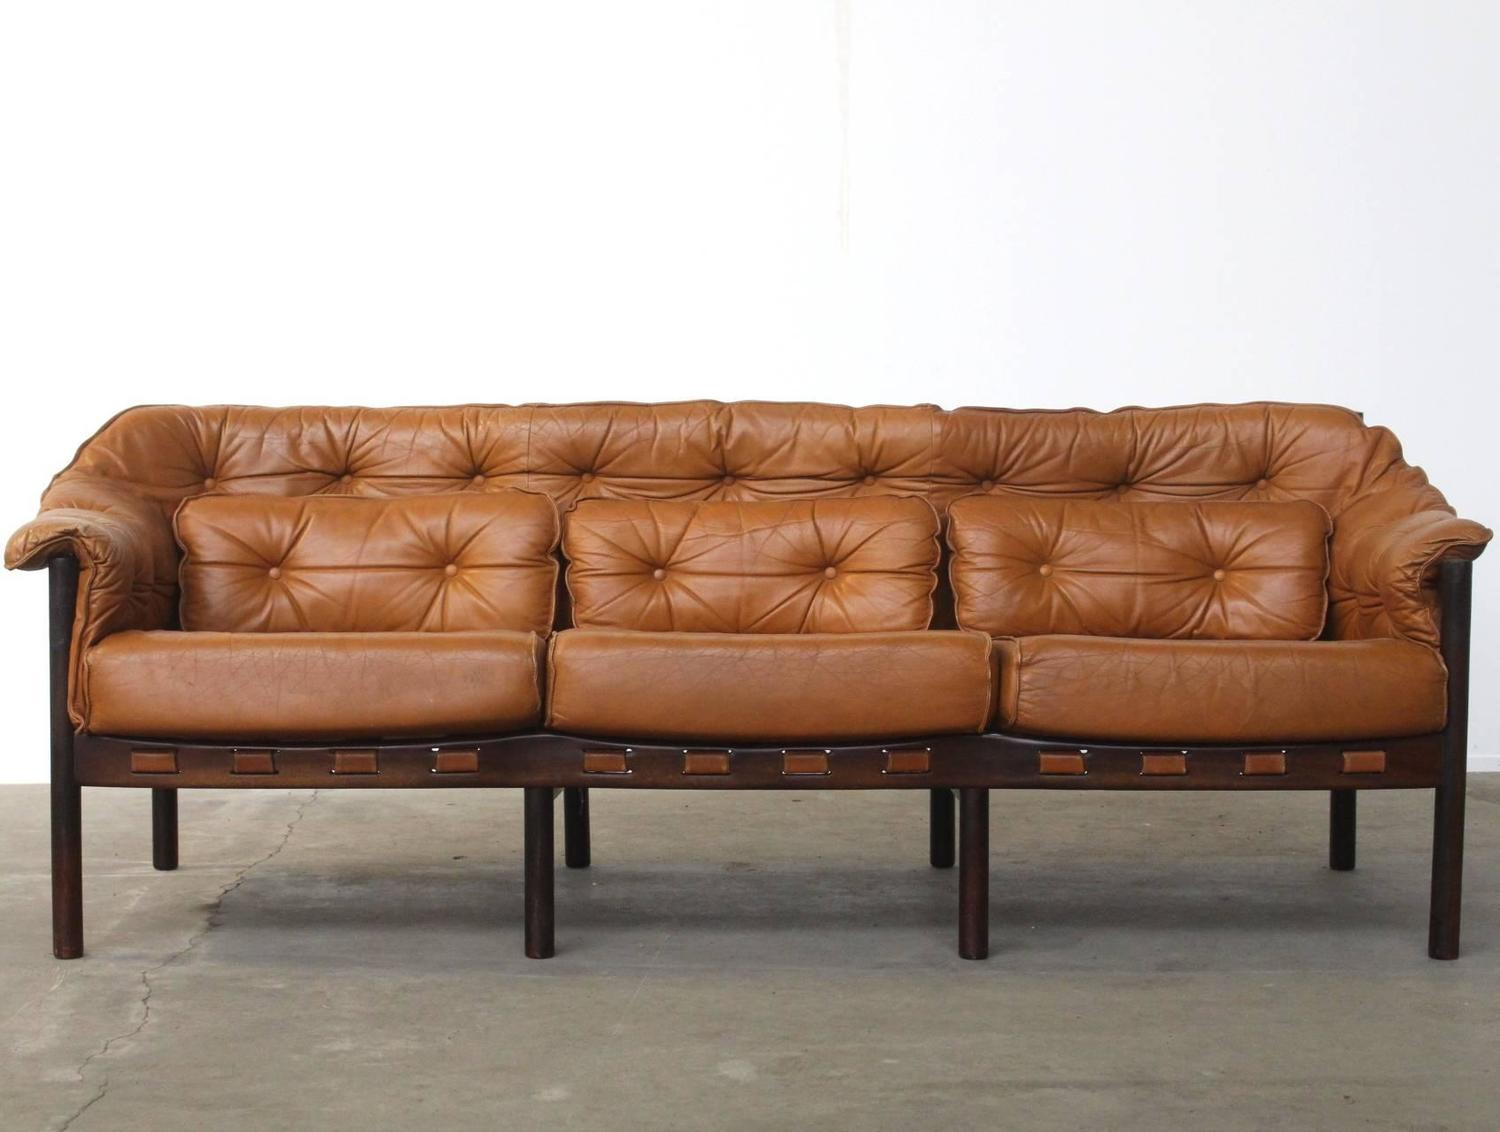 - Tufted Leather Camel Colored Three-Seat Arne Norell Sofa At 1stdibs